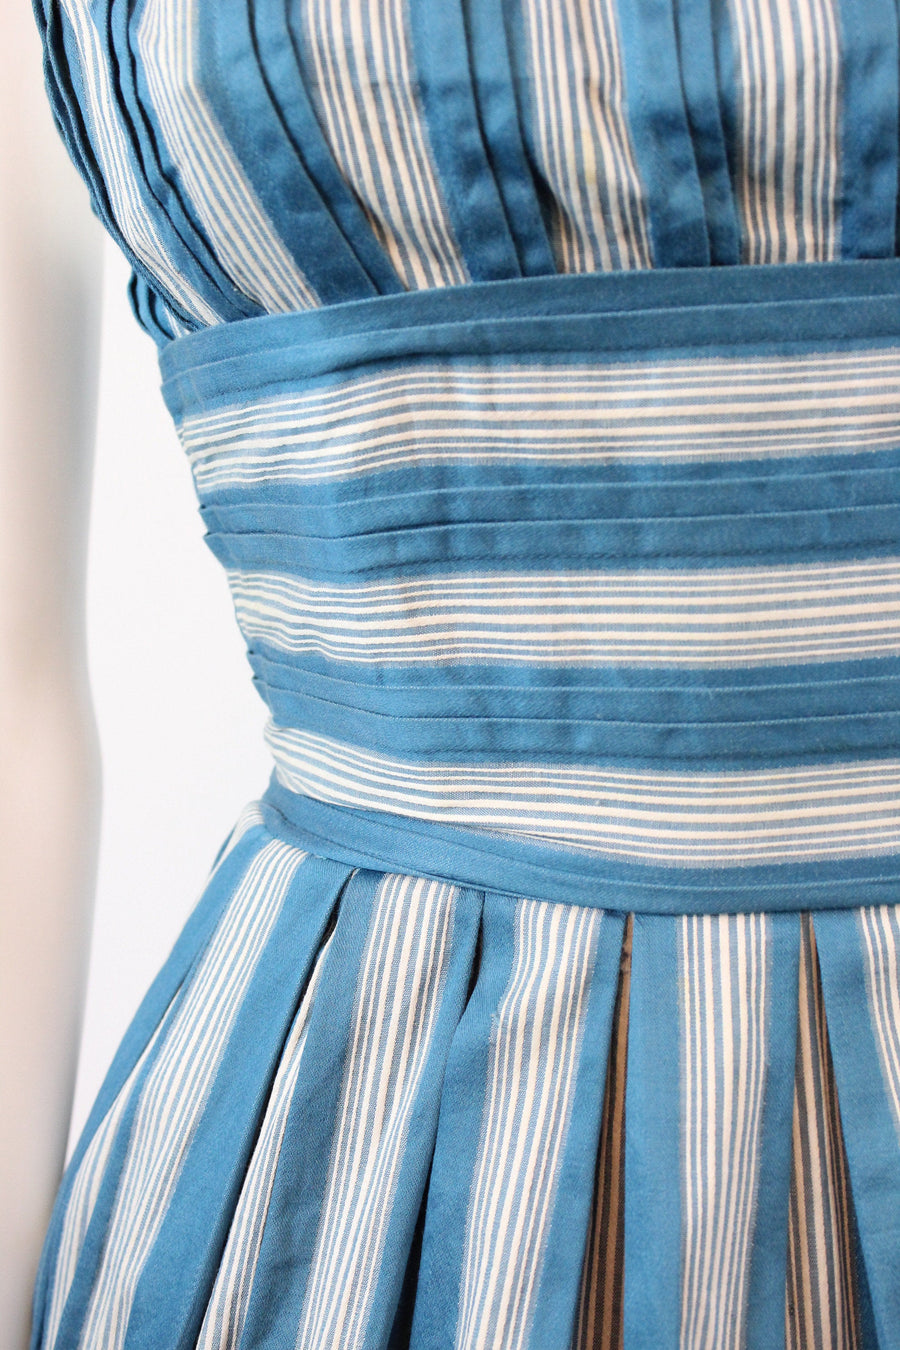 1950s striped cotton halter dress xxs | vintage POCKETS full skirt dress | new in